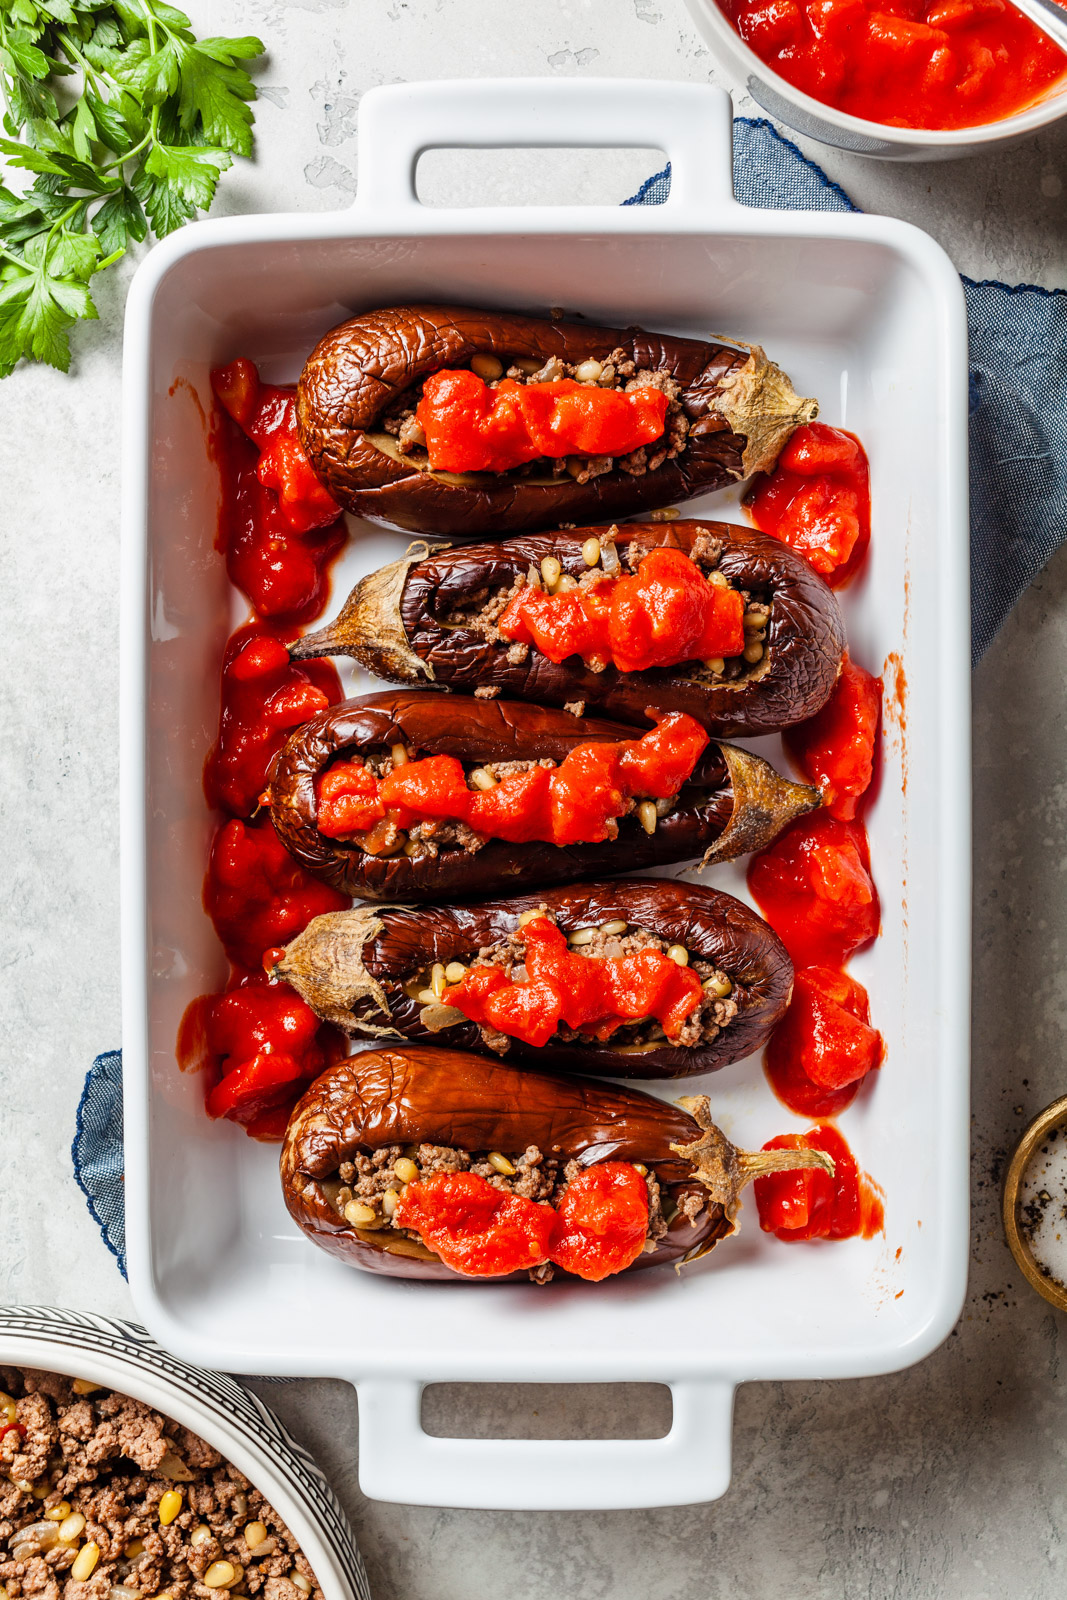 Middle Eastern Meat Stuffed Eggplant